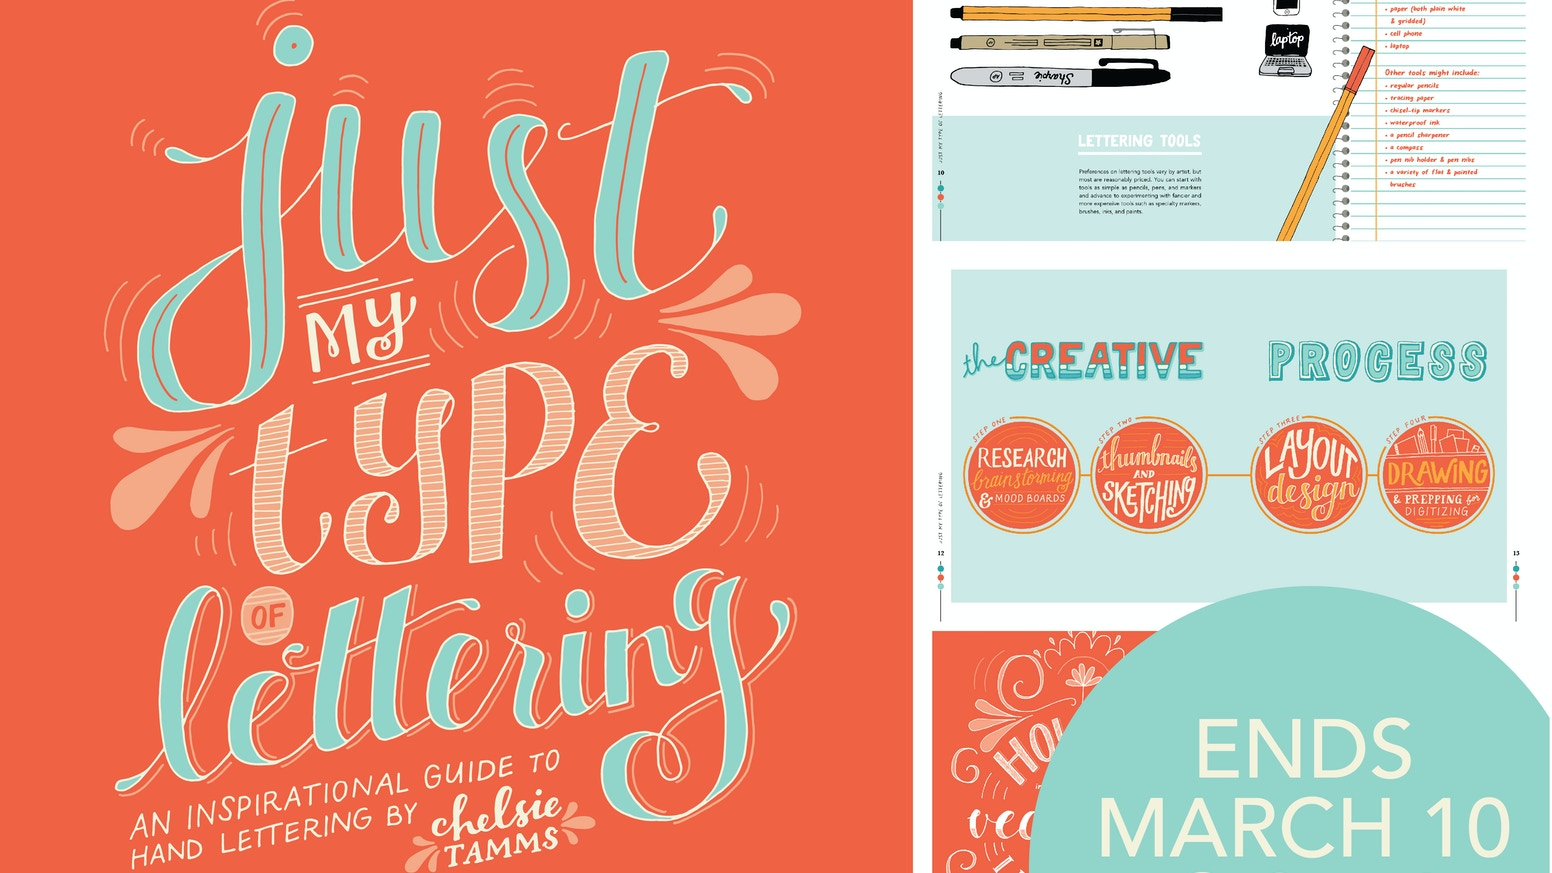 A 40-page, full color inspirational guide to hand lettering, how to make it, and its applications in contemporary design